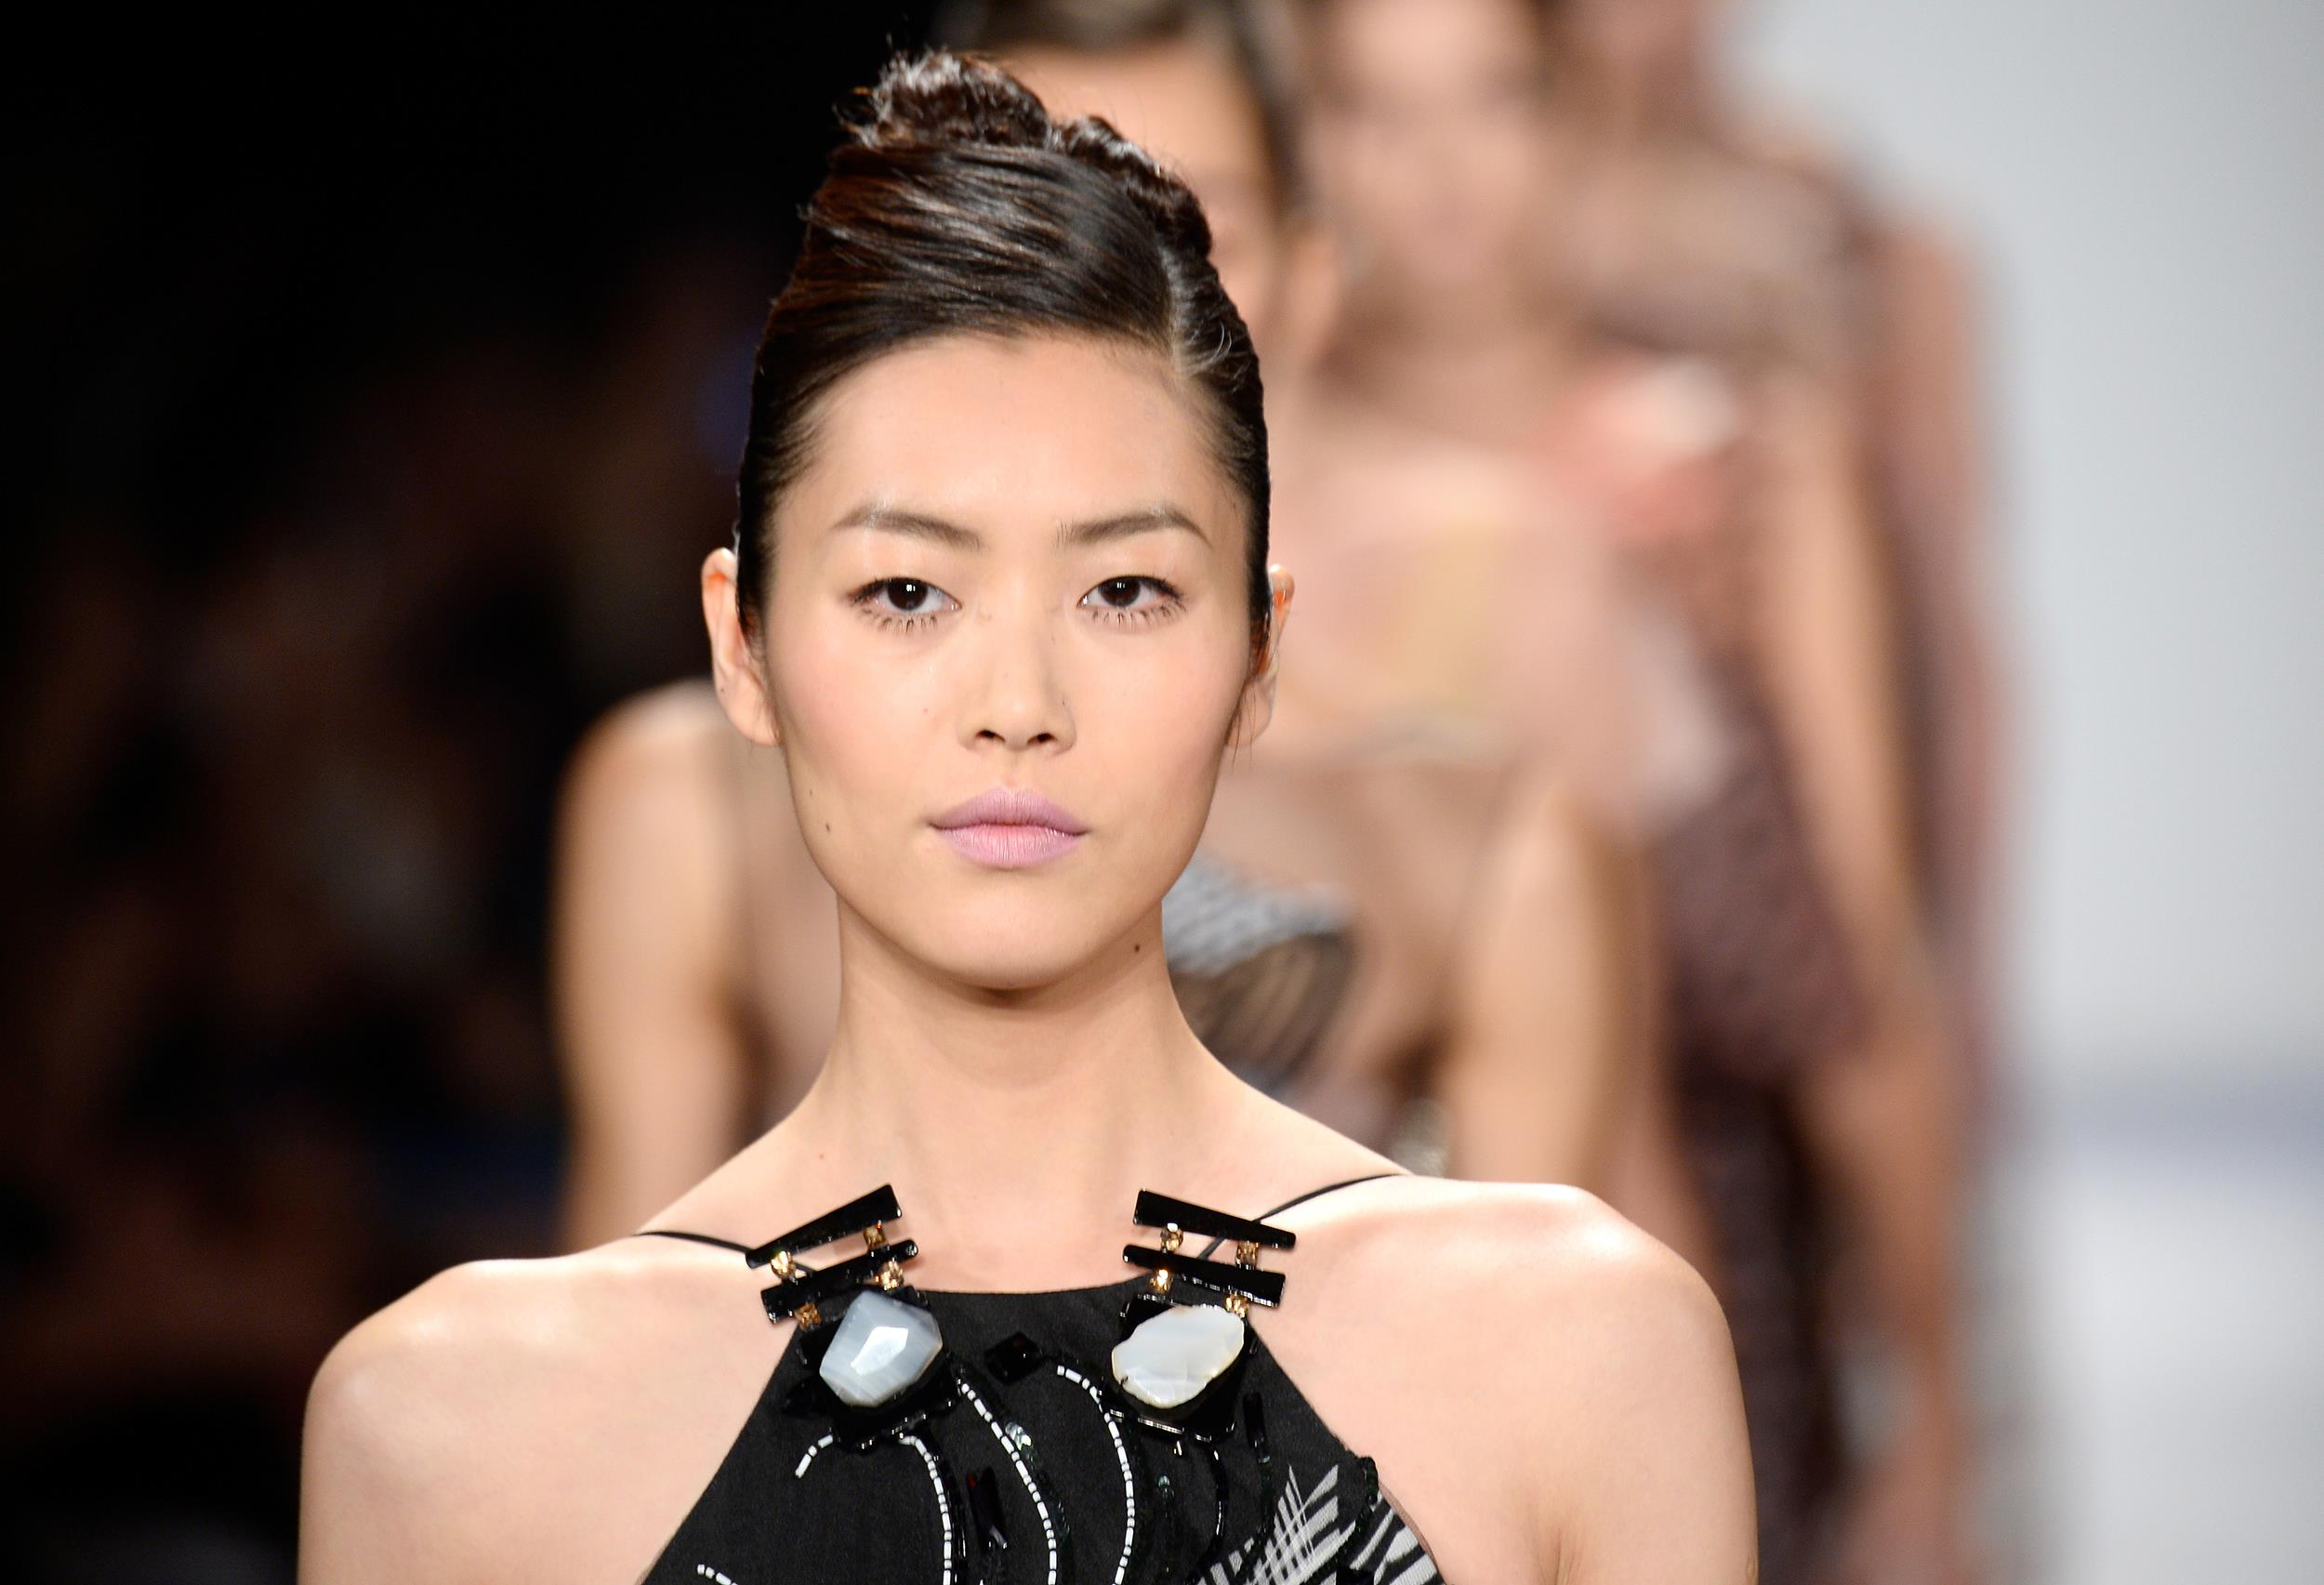 Model Liu Wen On Breaking Beauty Barriers In Fashion Industry